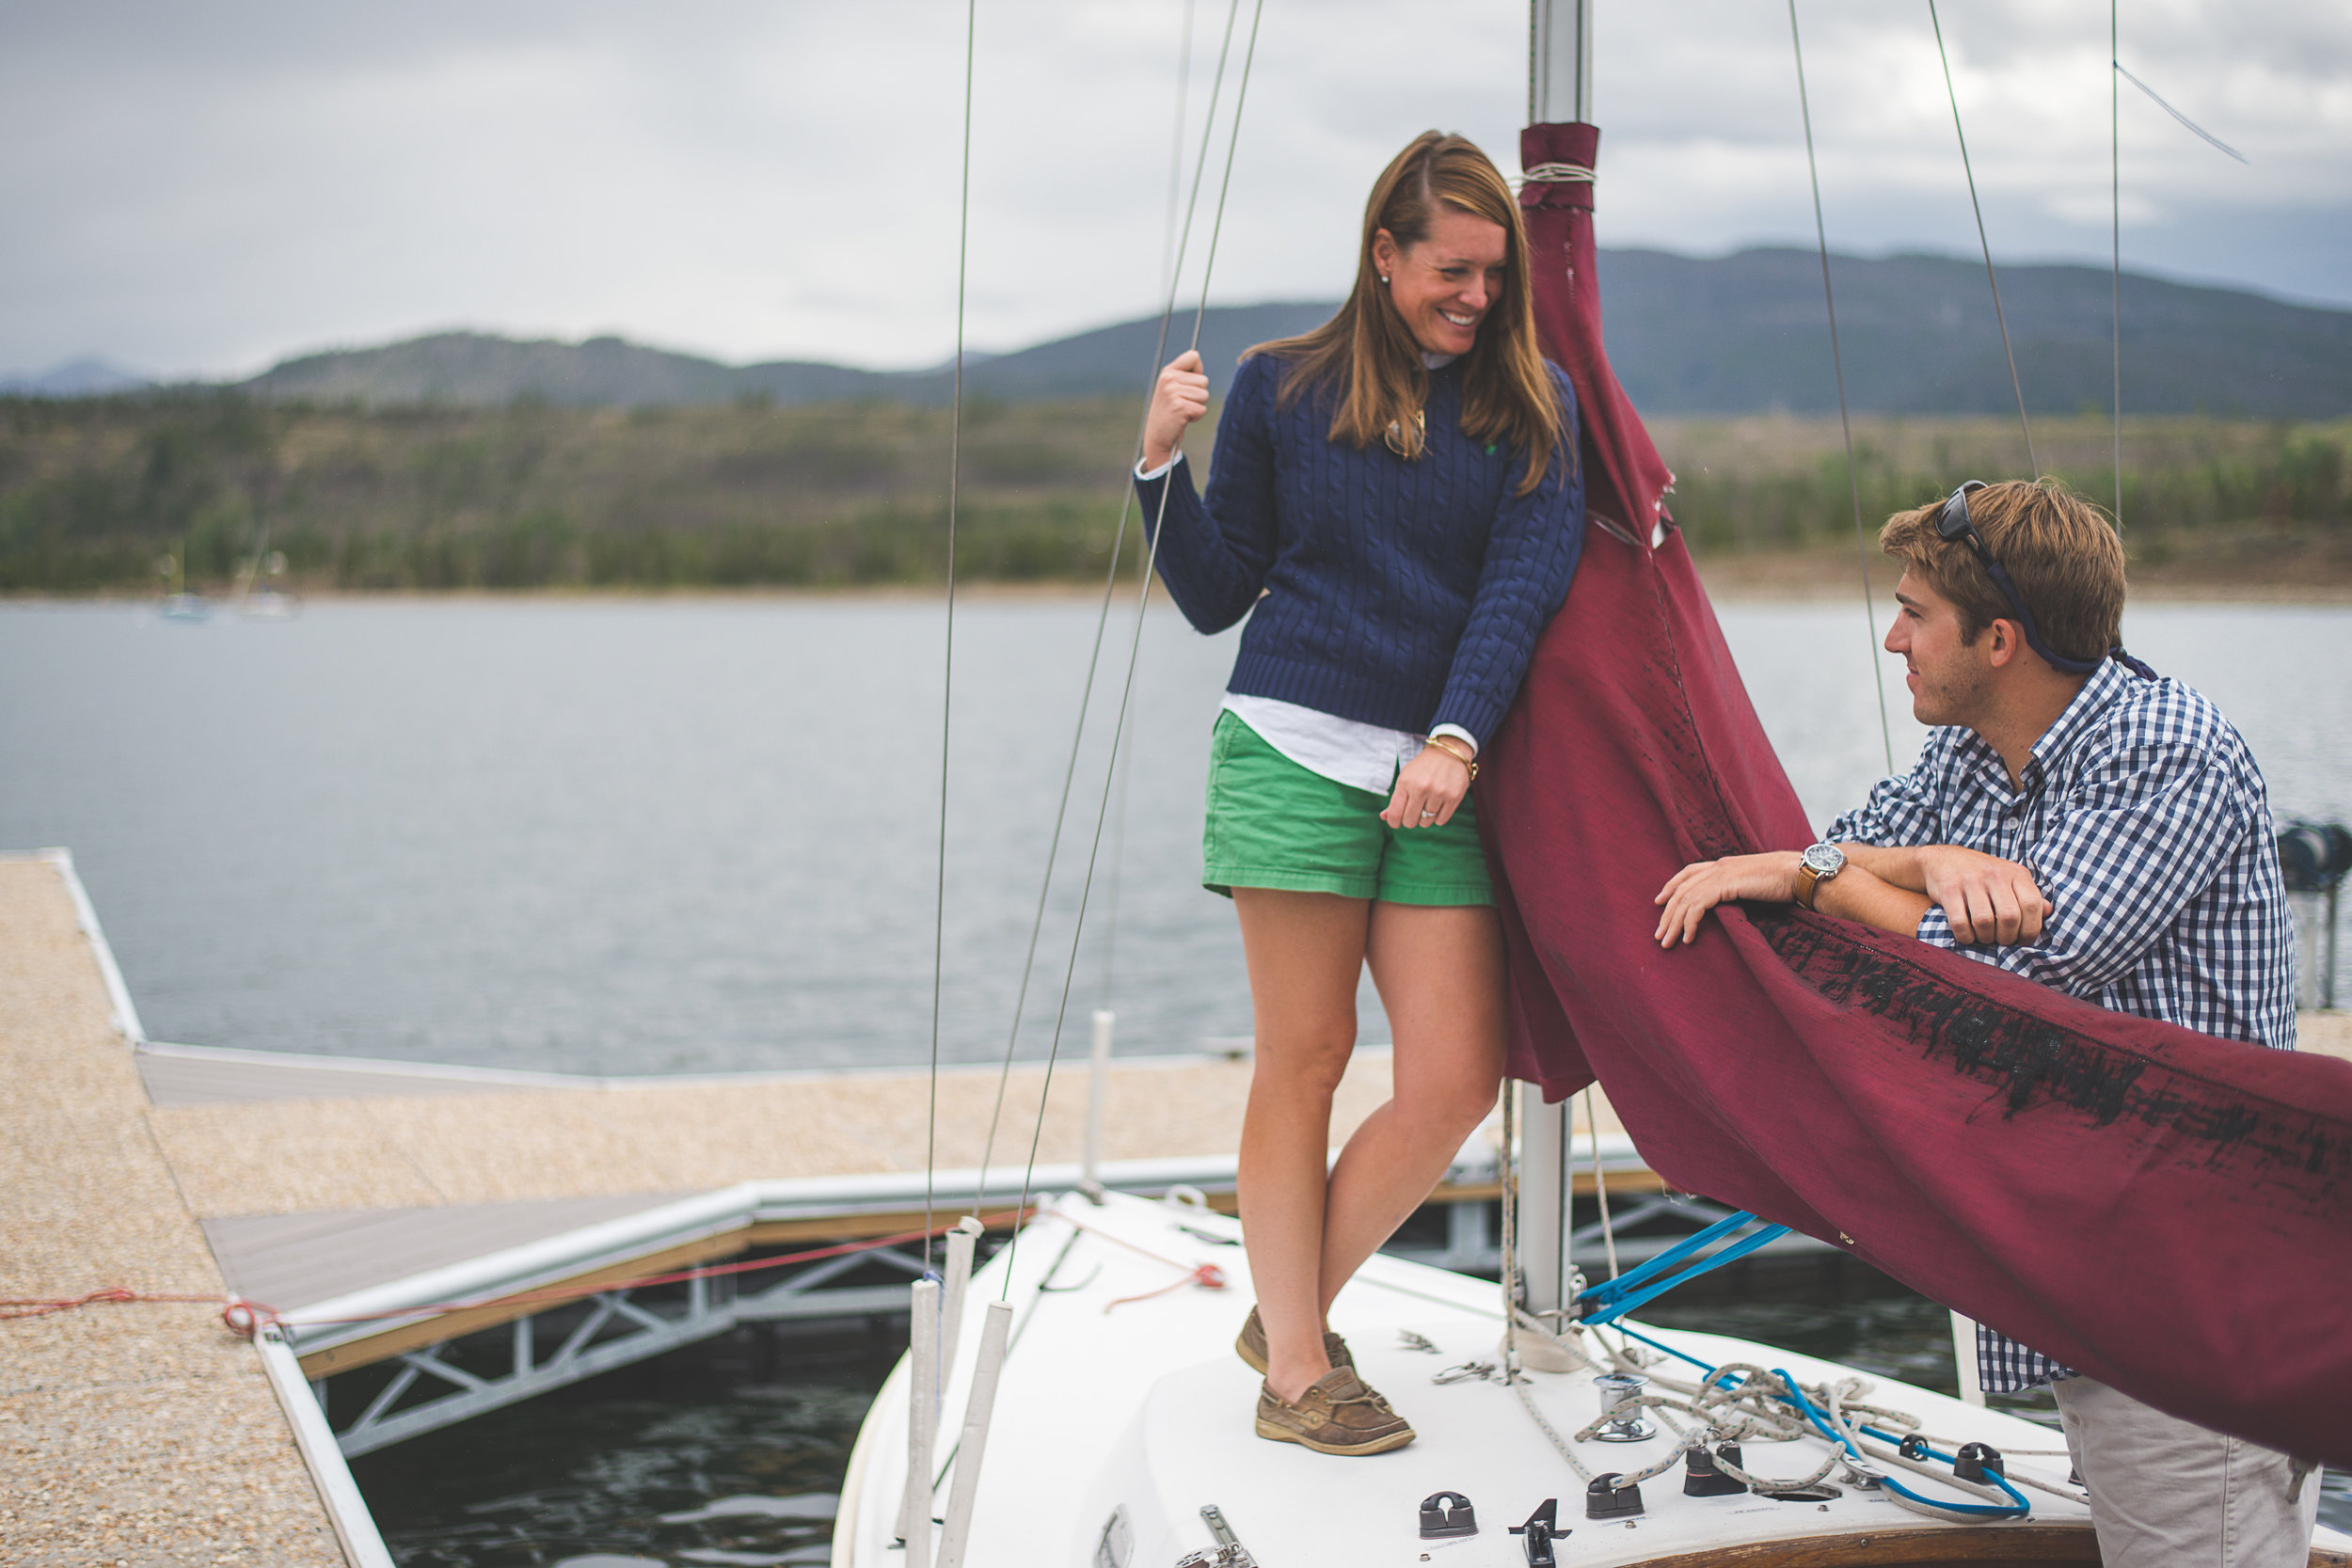 styled sailboat portrait session | Styling Your Portrait Session | Keeping Composure Photography